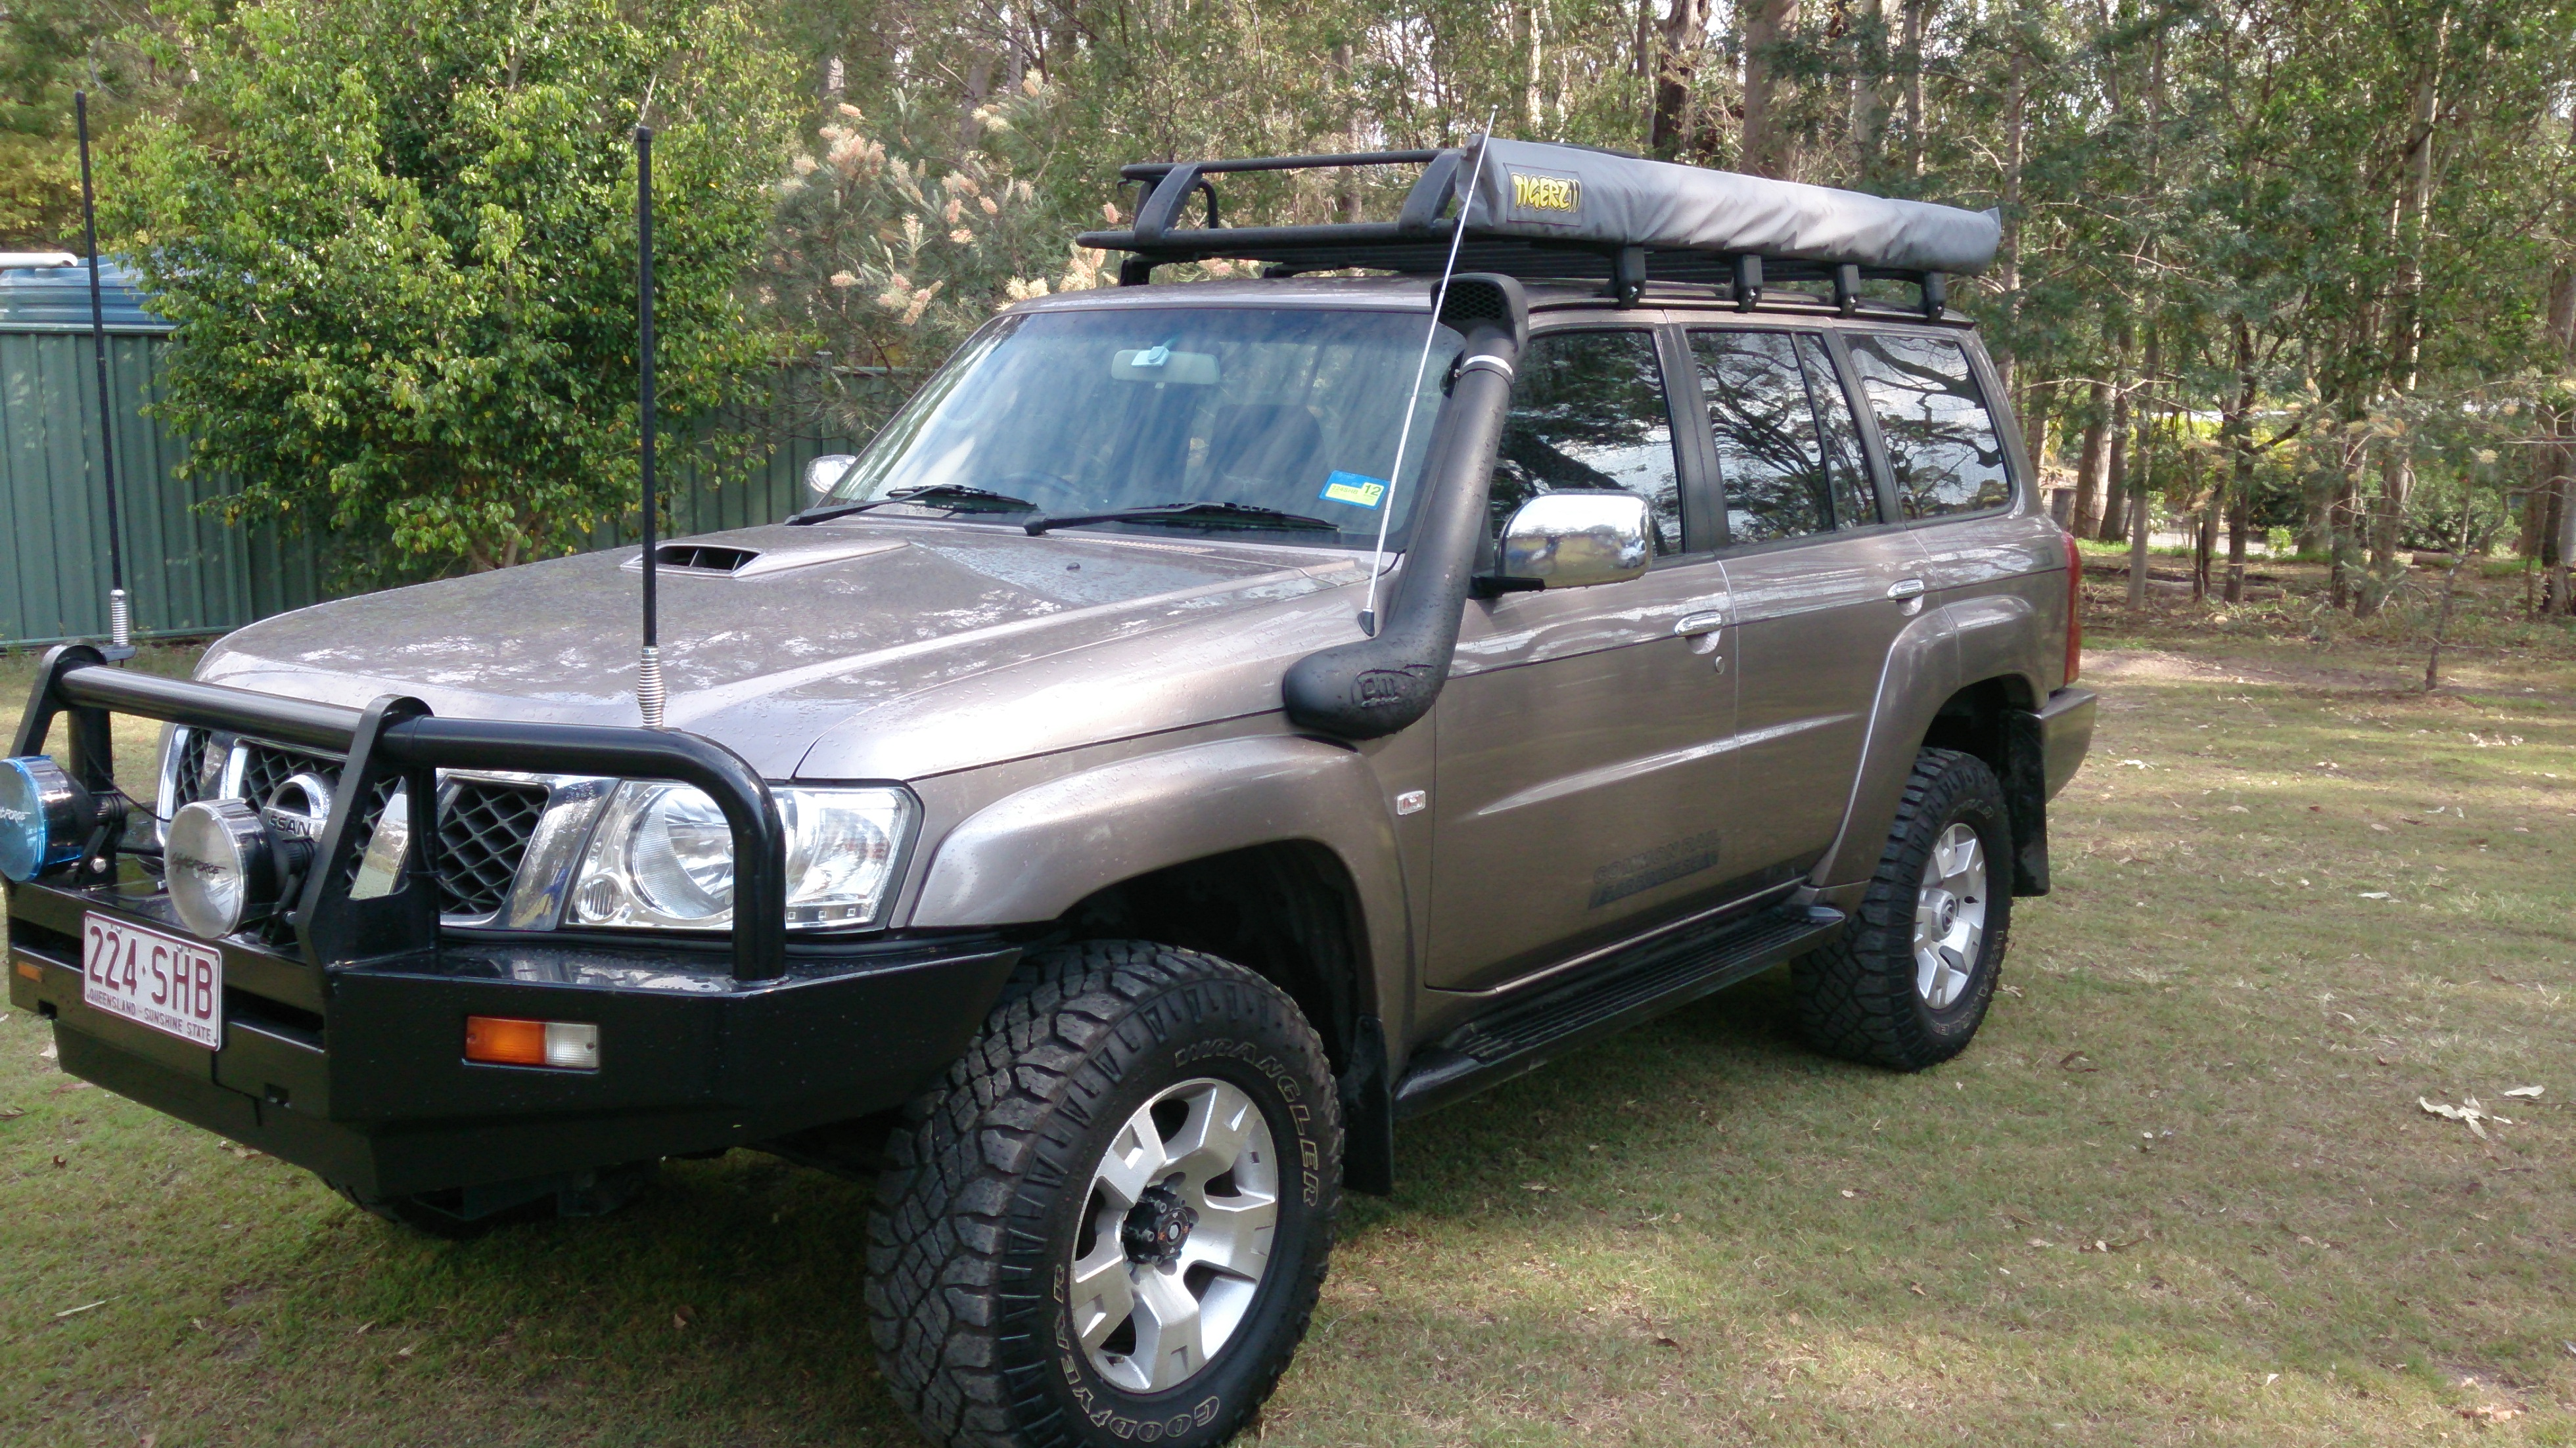 2008 nissan patrol st 4x4 gu my08 car sales qld brisbane south 2278007. Black Bedroom Furniture Sets. Home Design Ideas